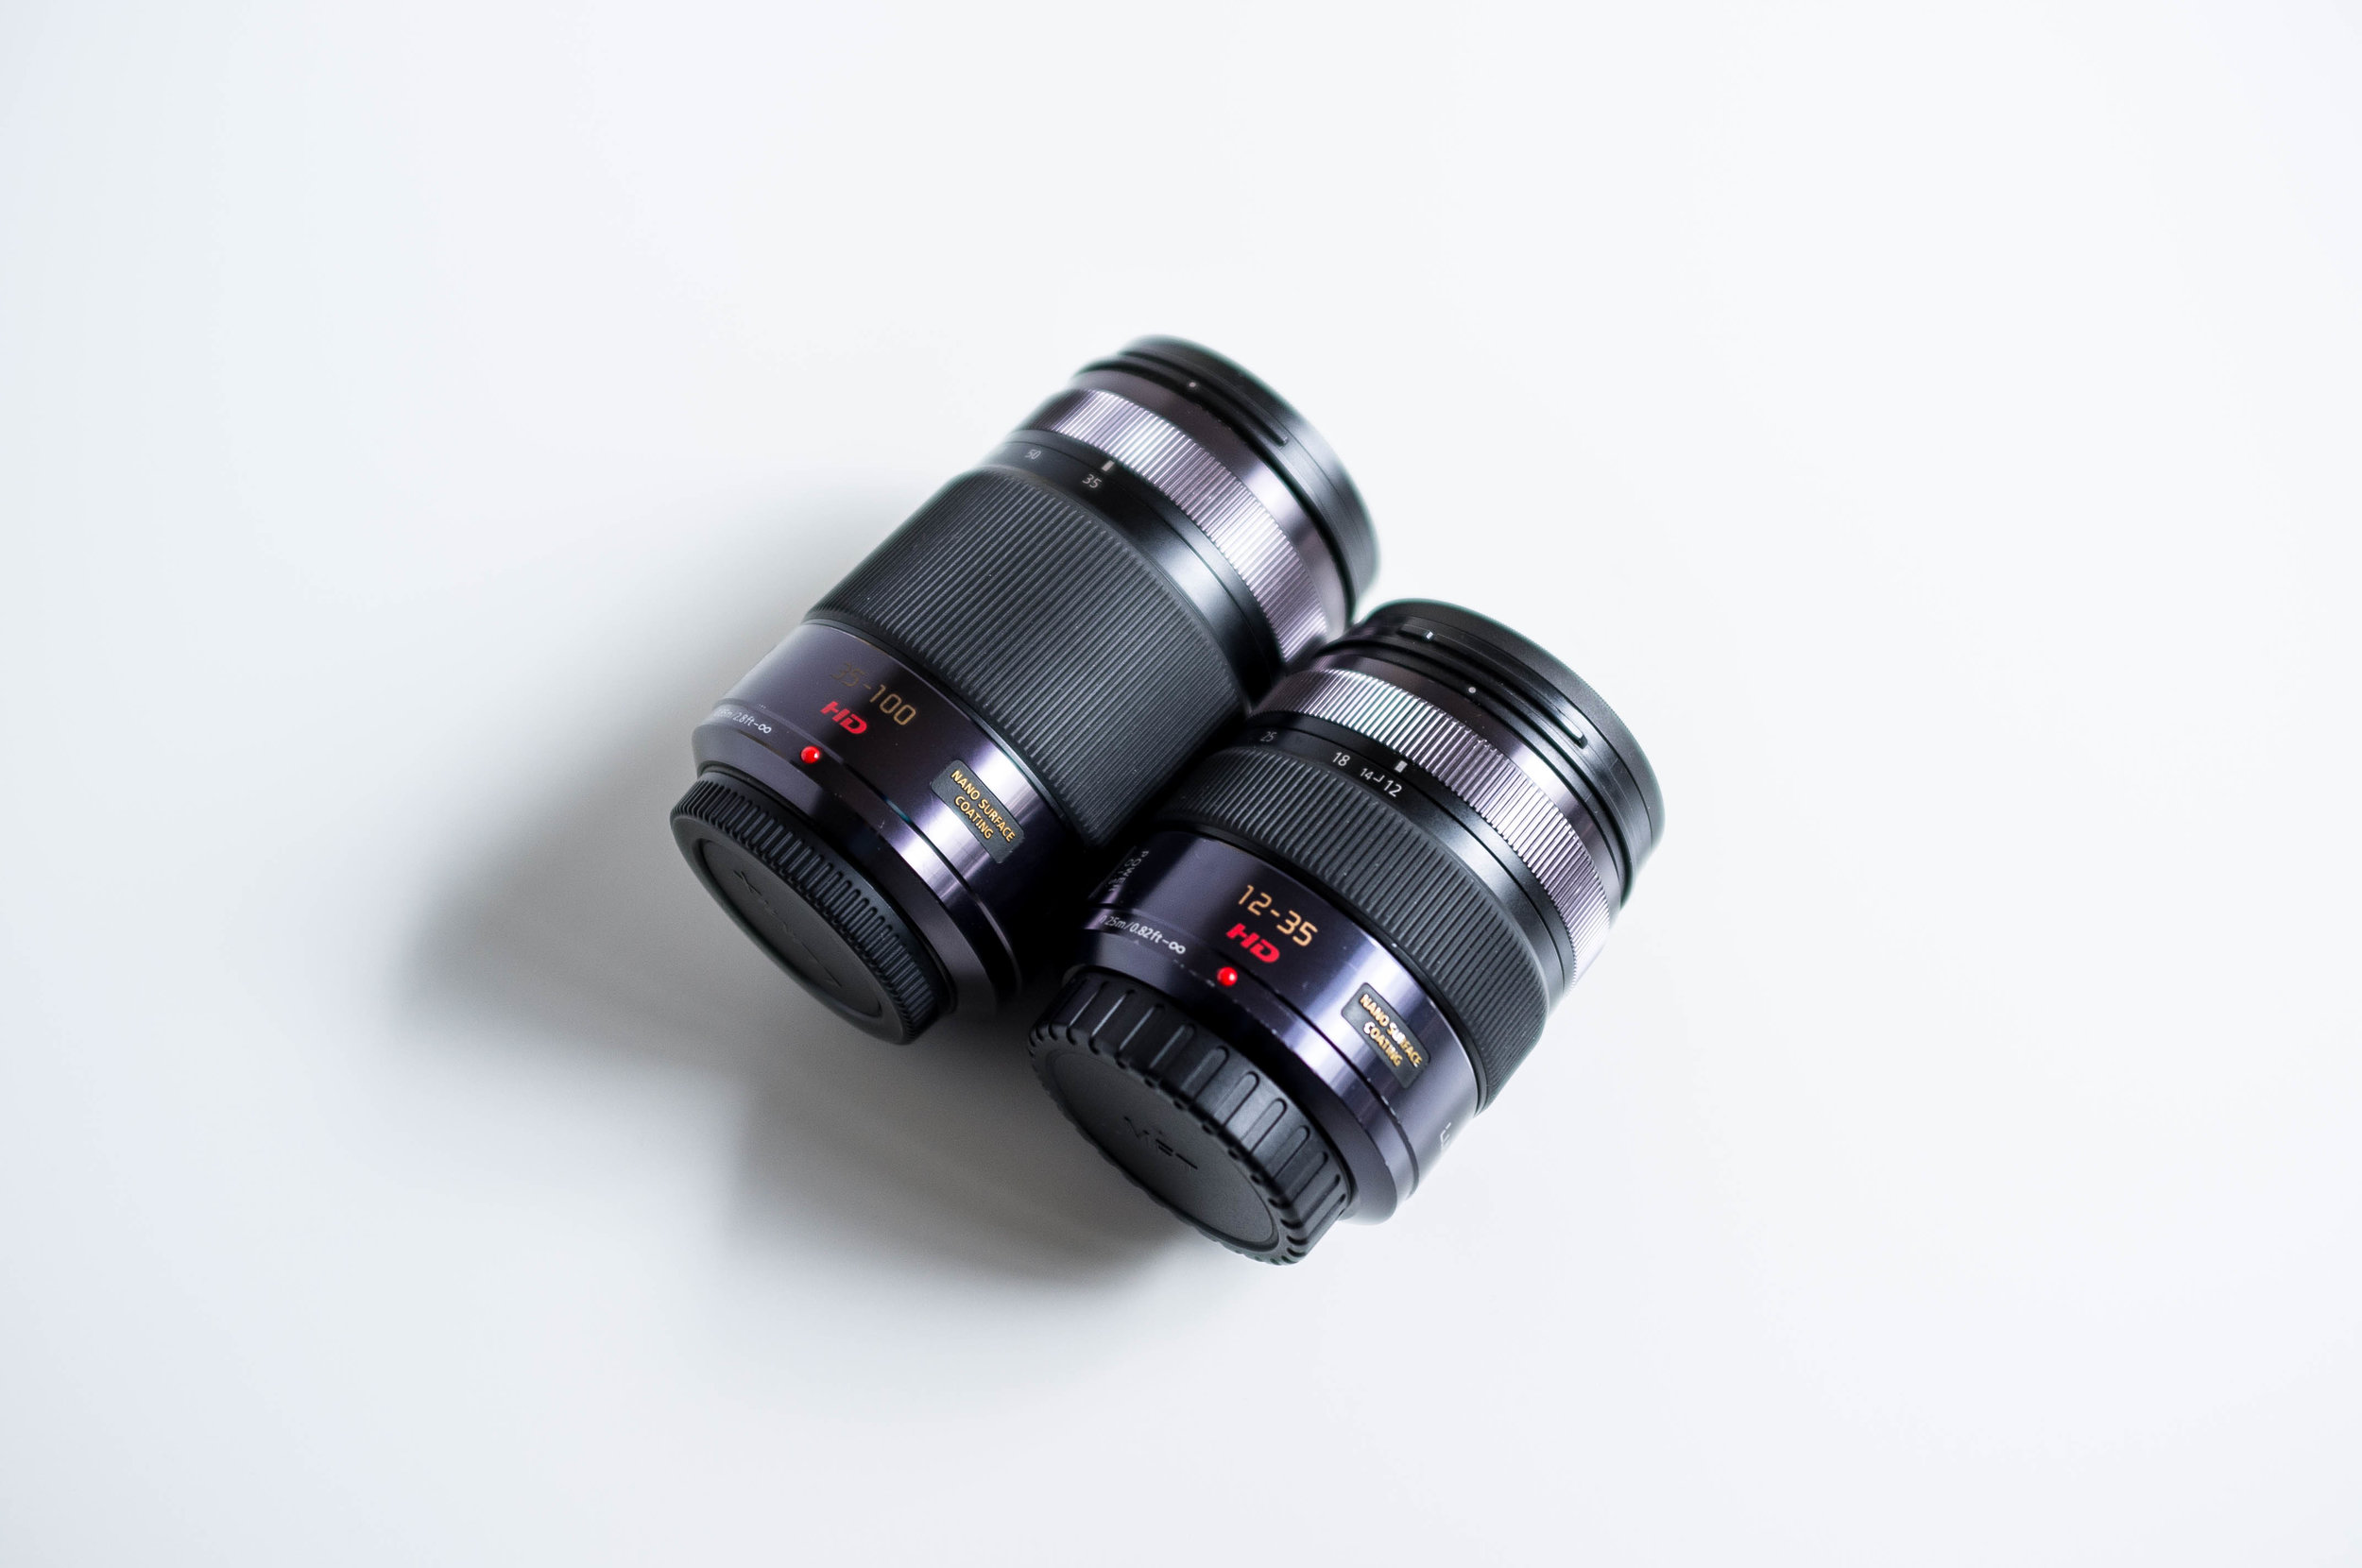 Panasonic 12-35mm f/2.8 and 35-100mm f/2.8